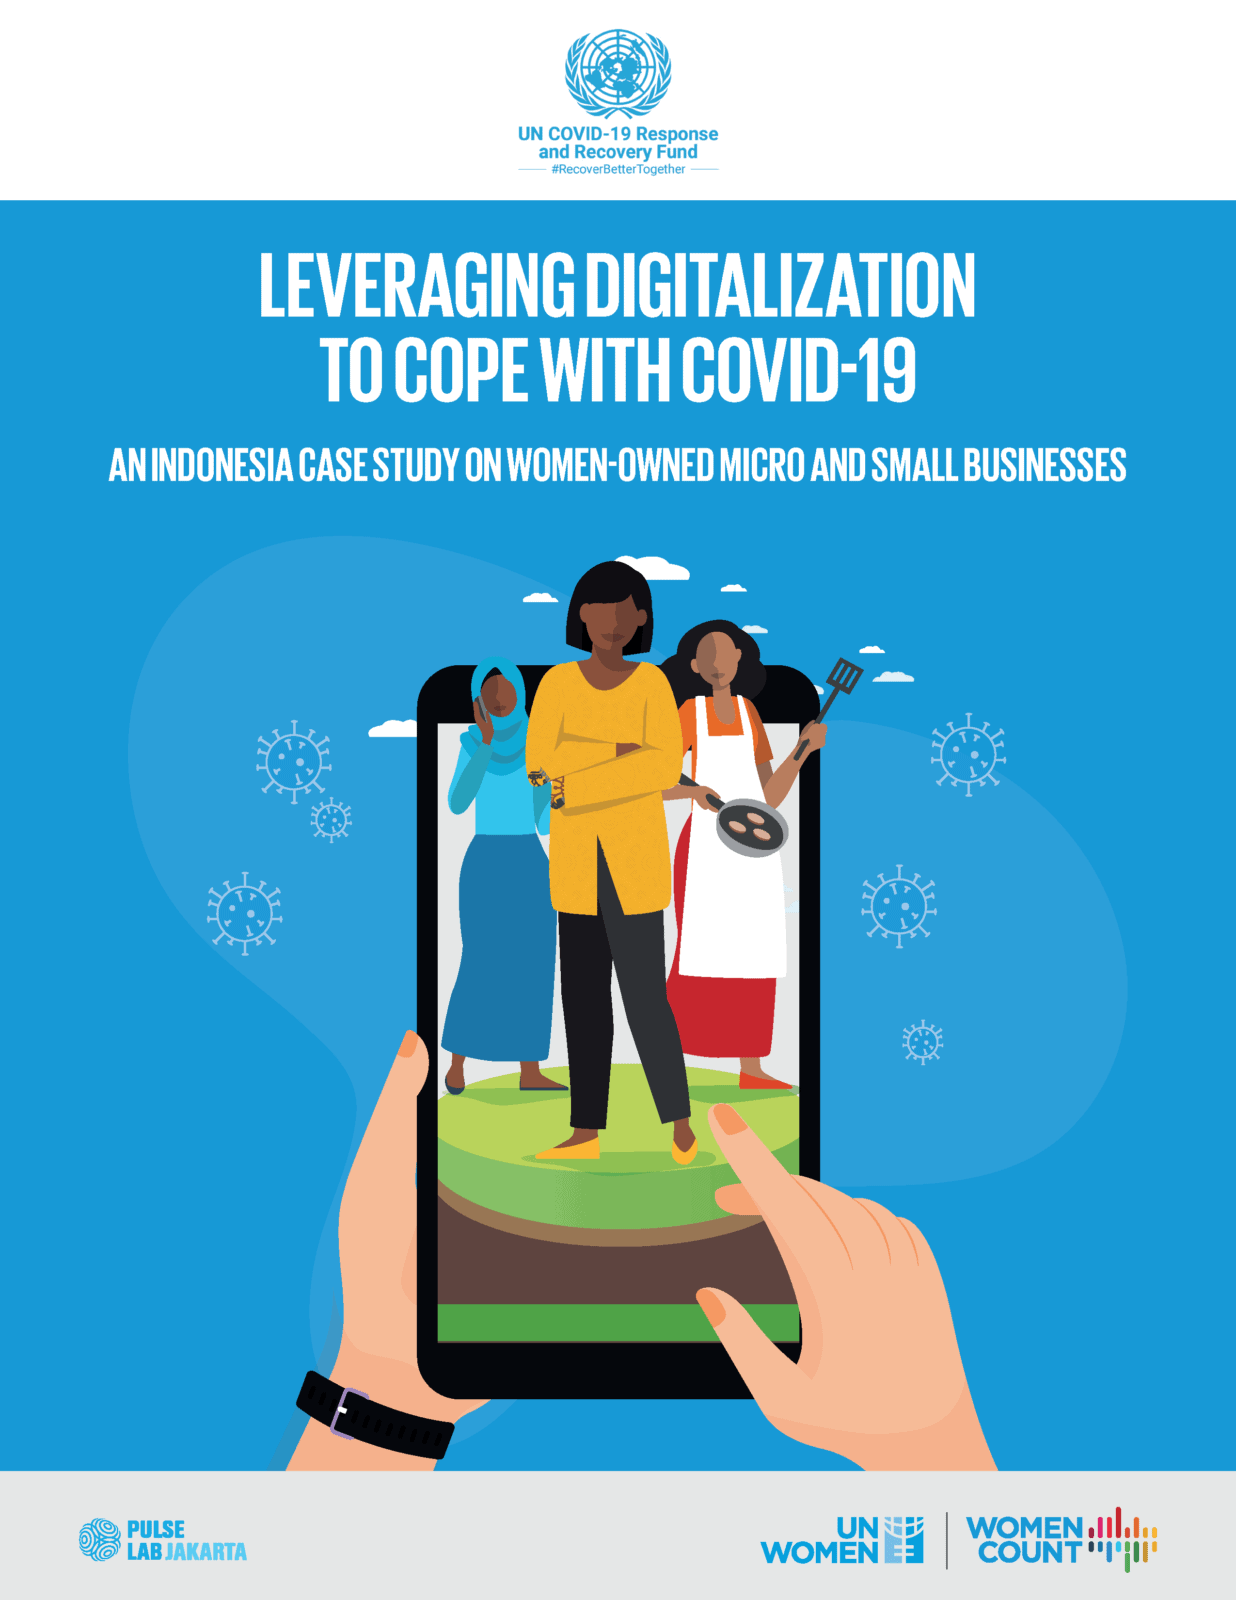 Leveraging digitalization to cope with COVID-19: An Indonesia case study on women-owned micro and small businesses 3